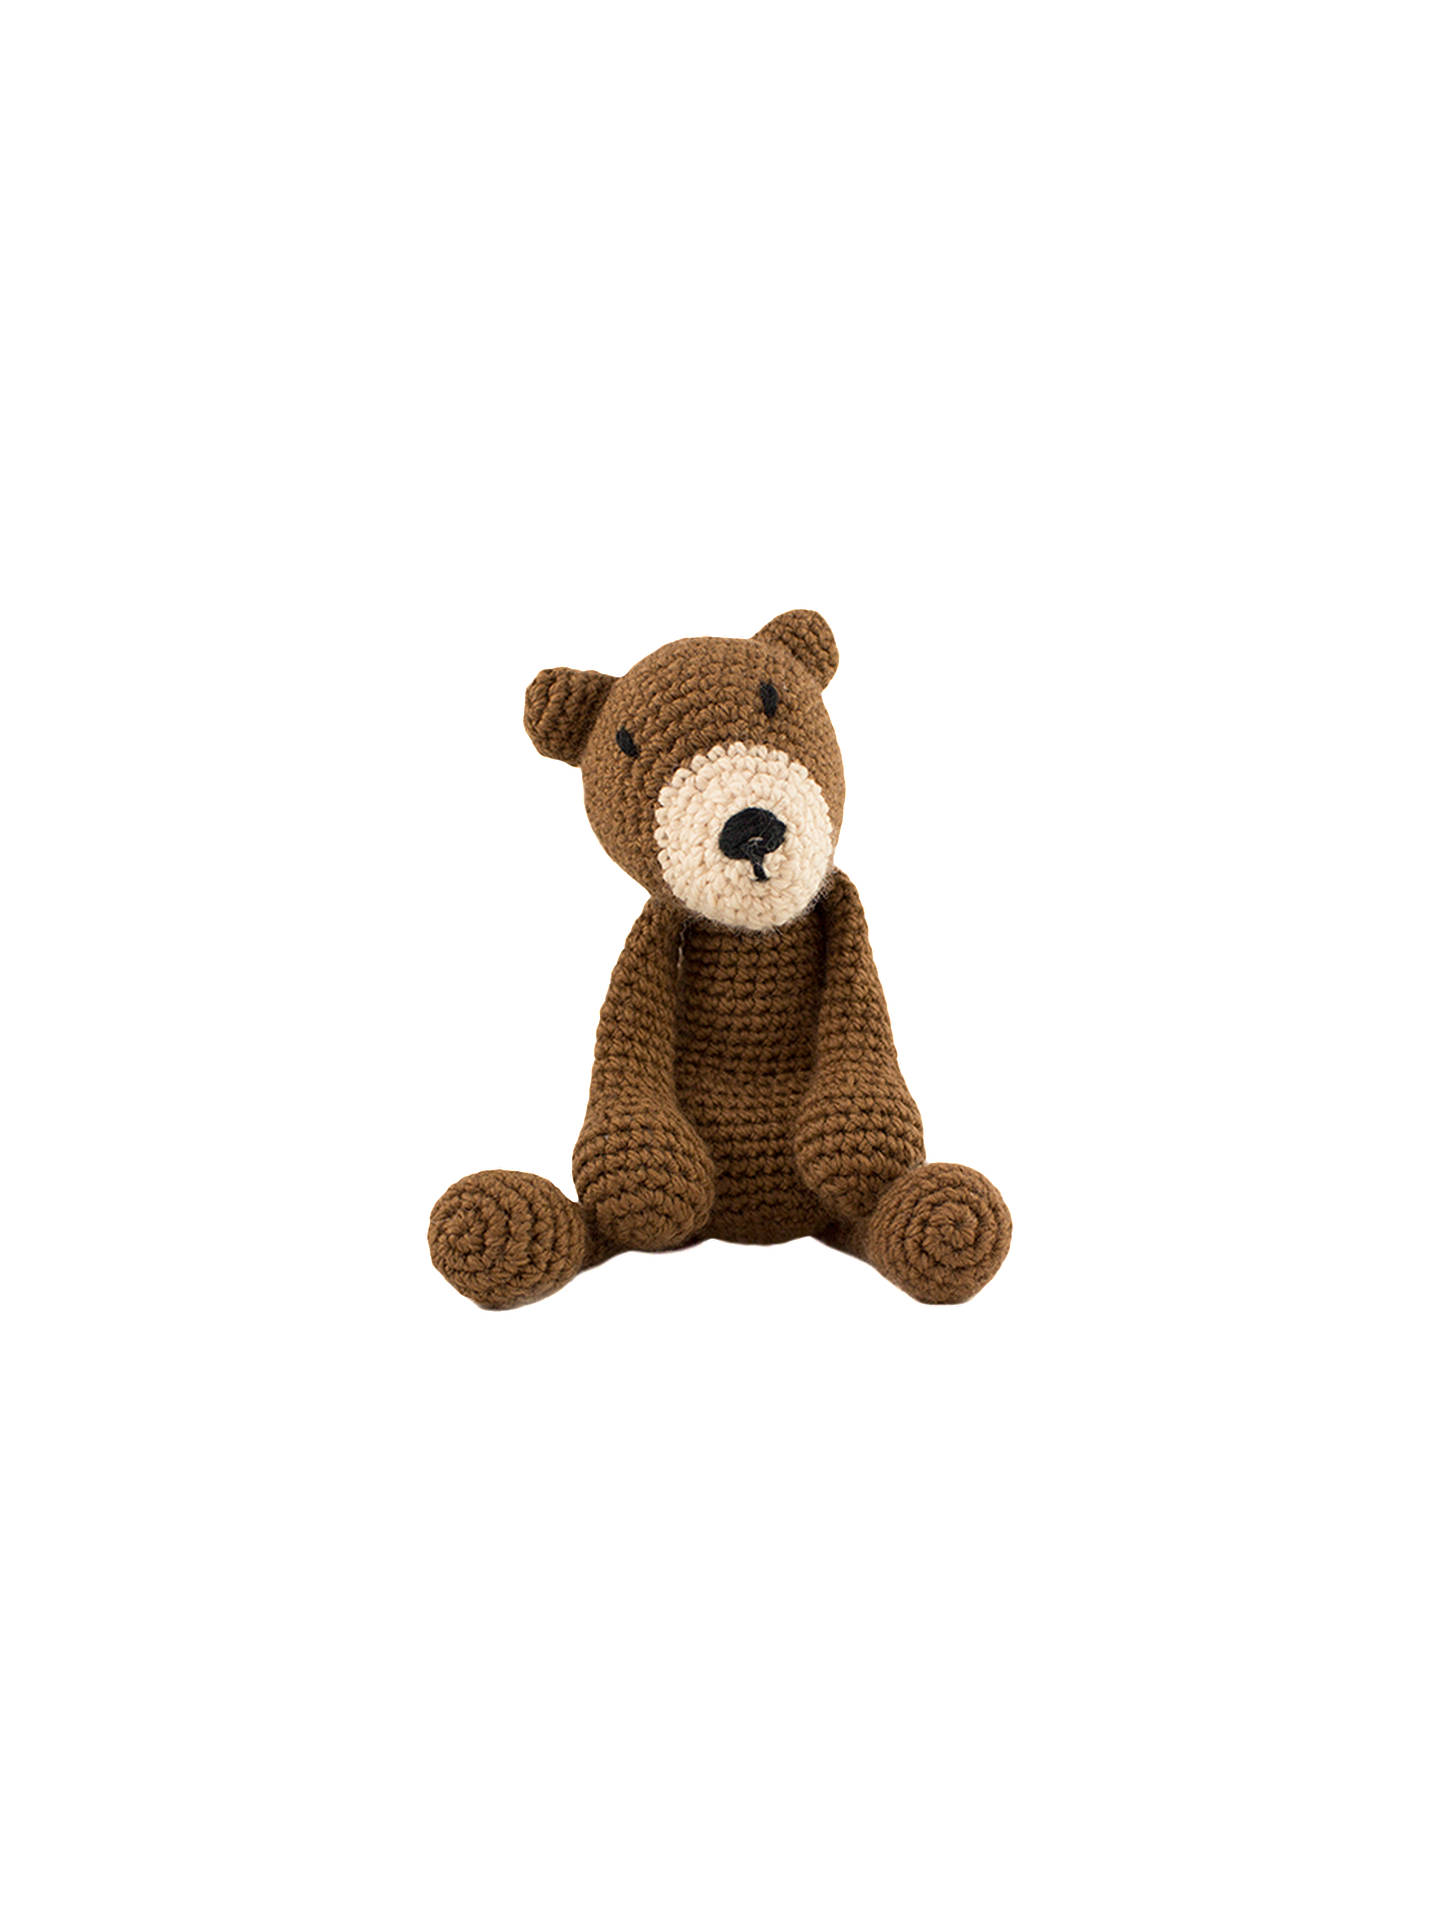 BuyToft Penelope The Bear Crochet Kit Online at johnlewis.com